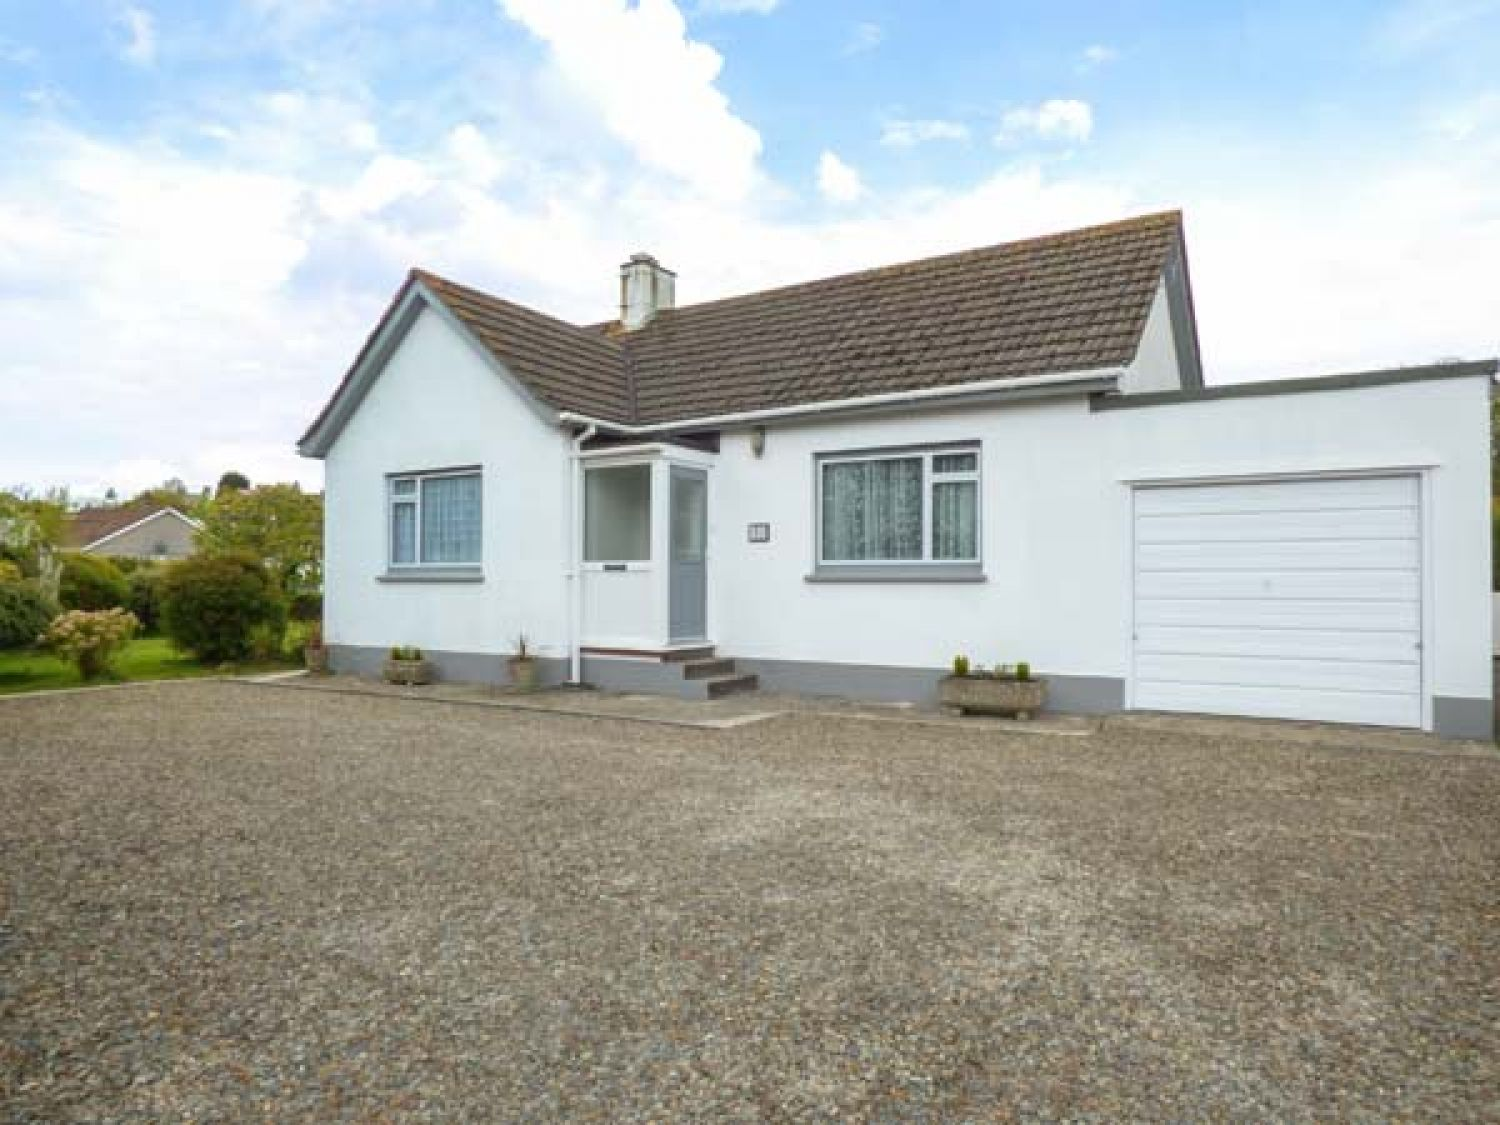 40 Eastcliffe Road - Cornwall - 929382 - photo 1